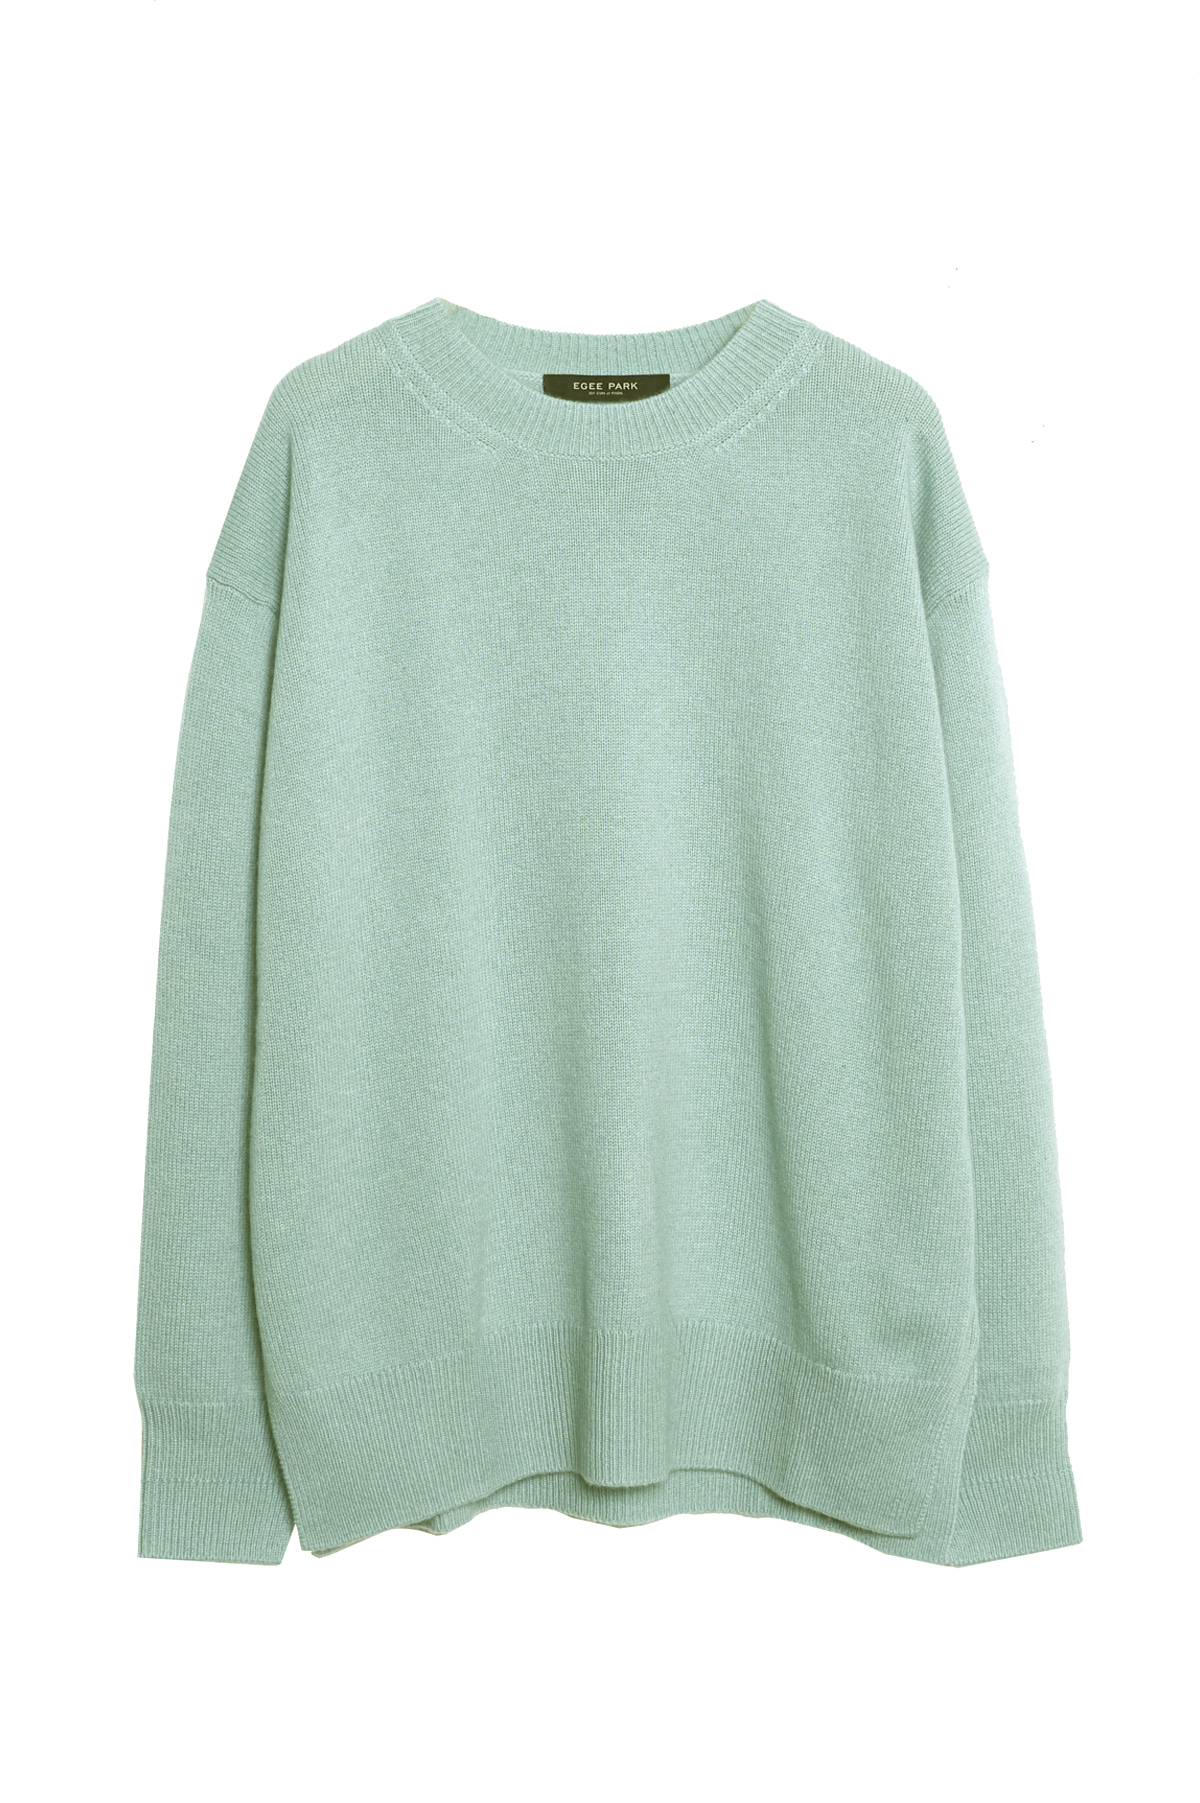 ROUND PURE CASHMERE KNIT